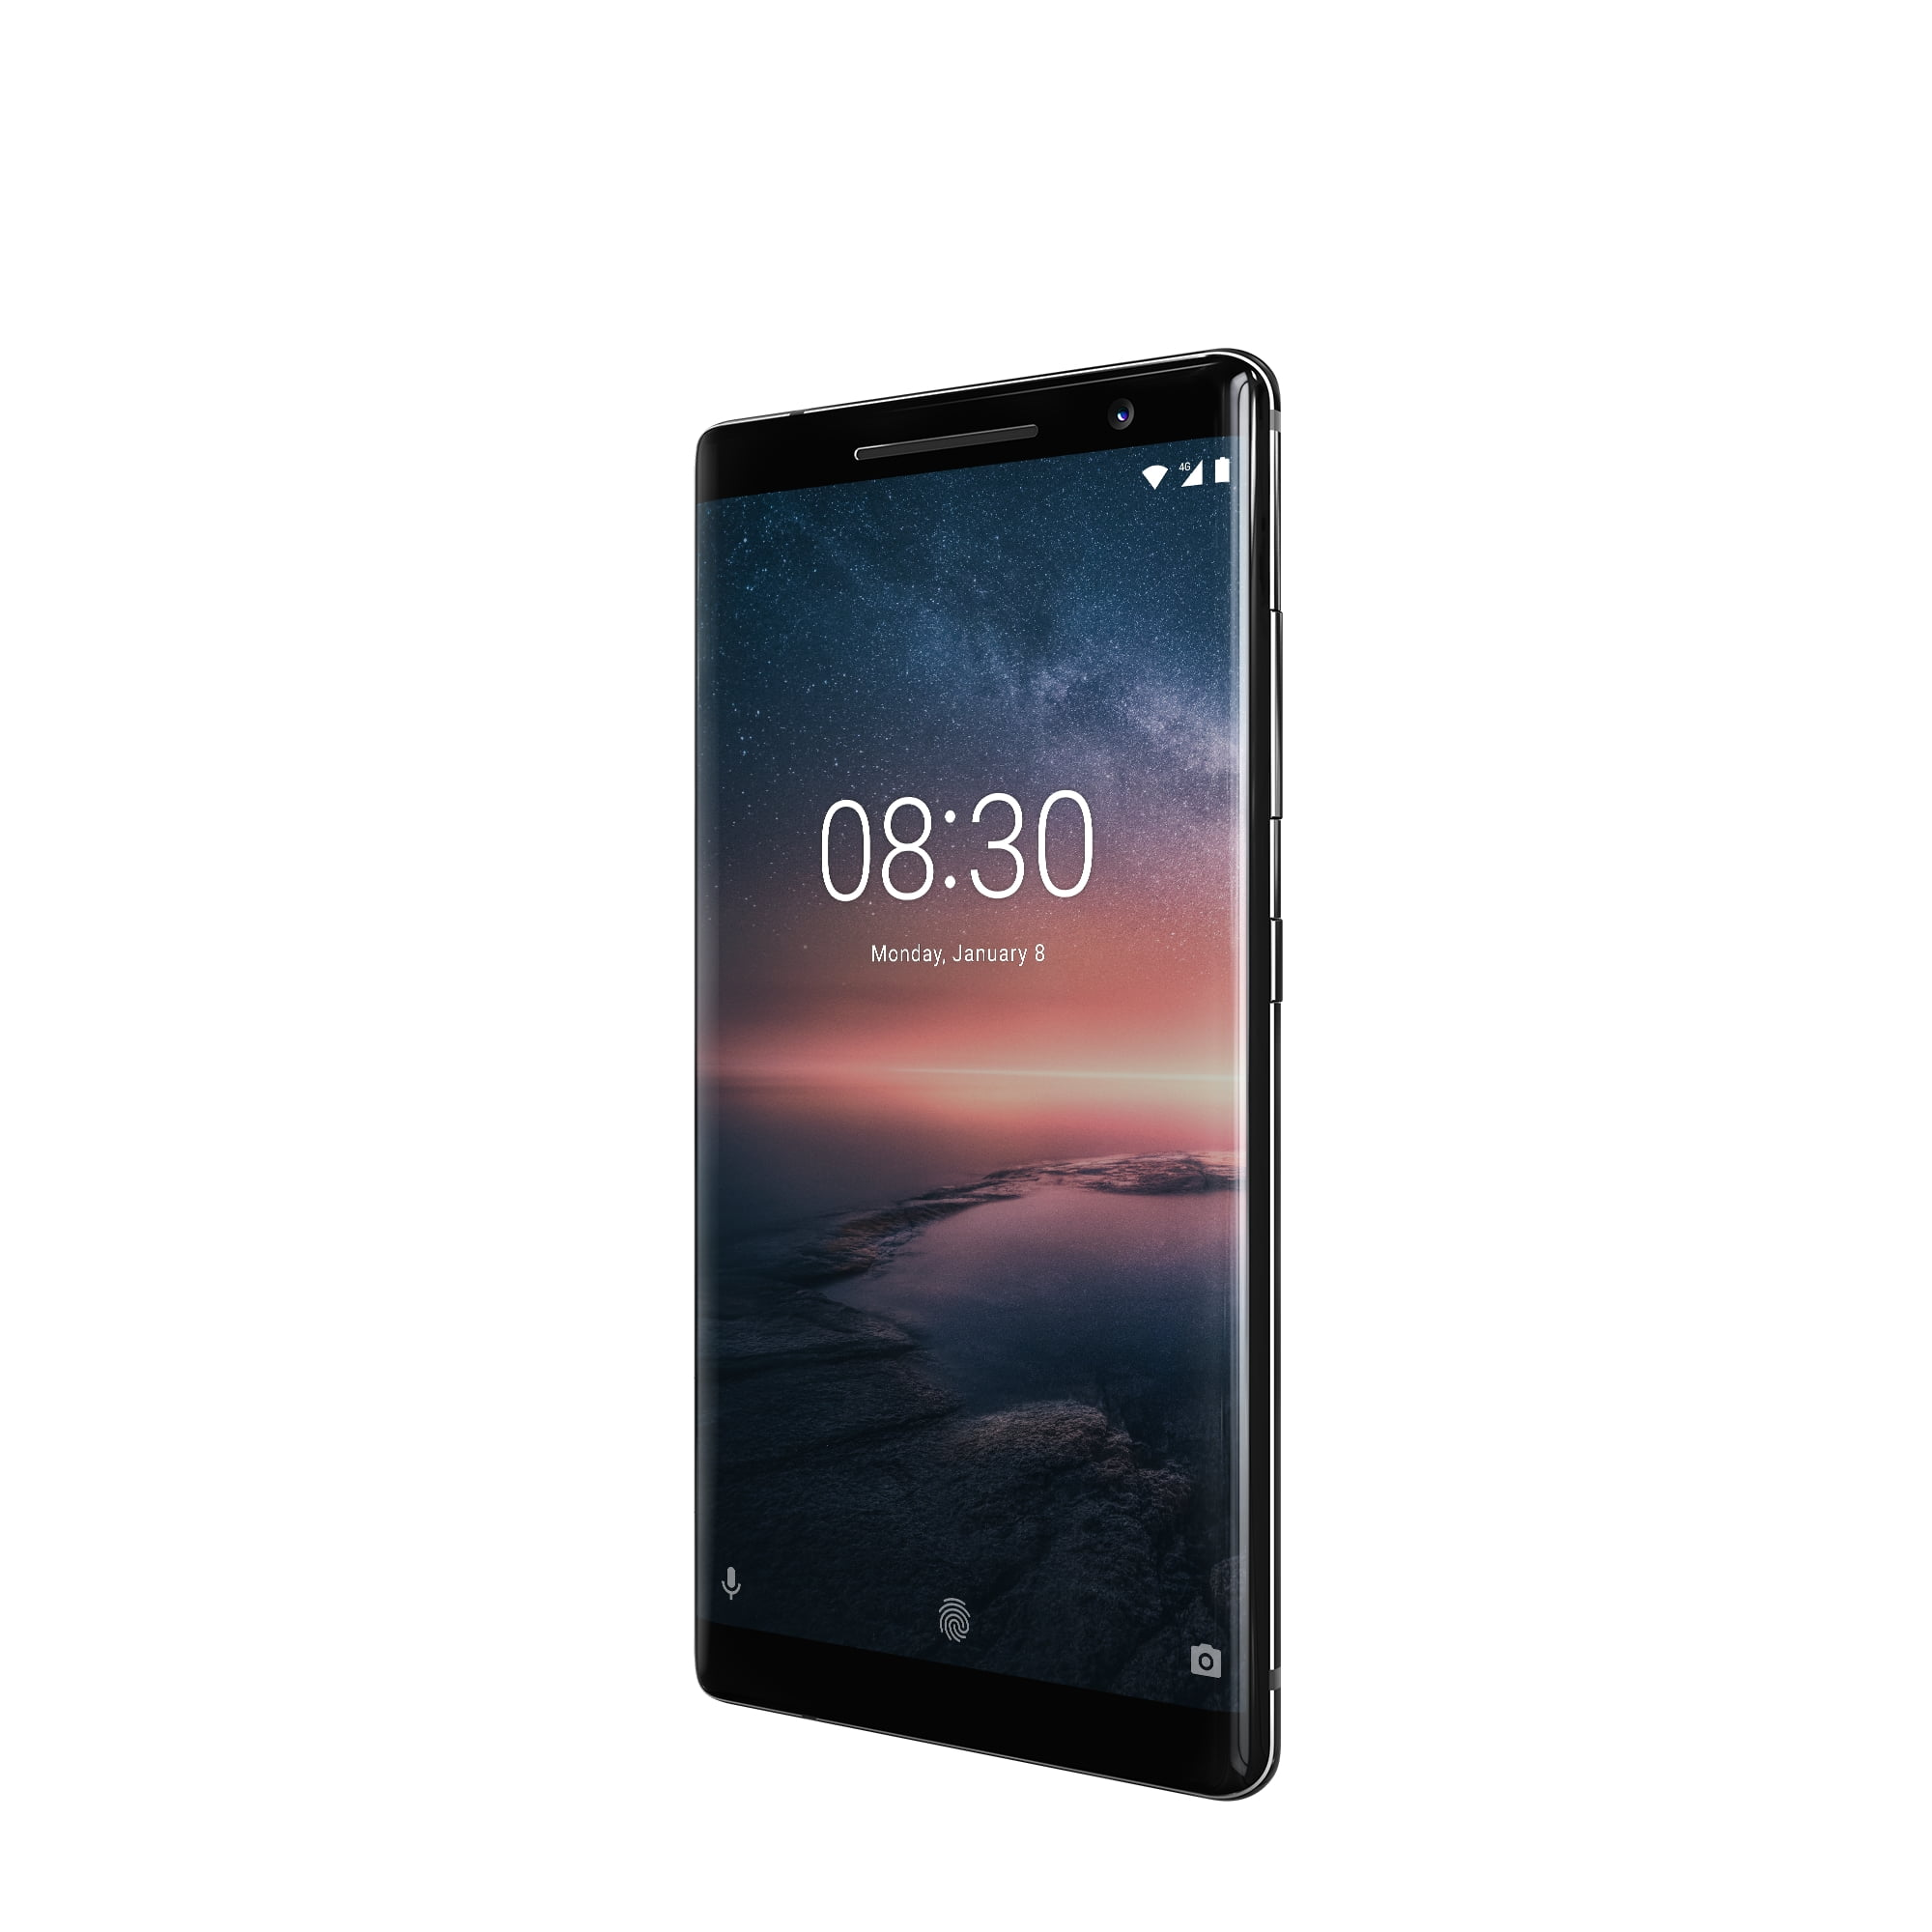 New from Nokia - The Nokia 8 Sirocco